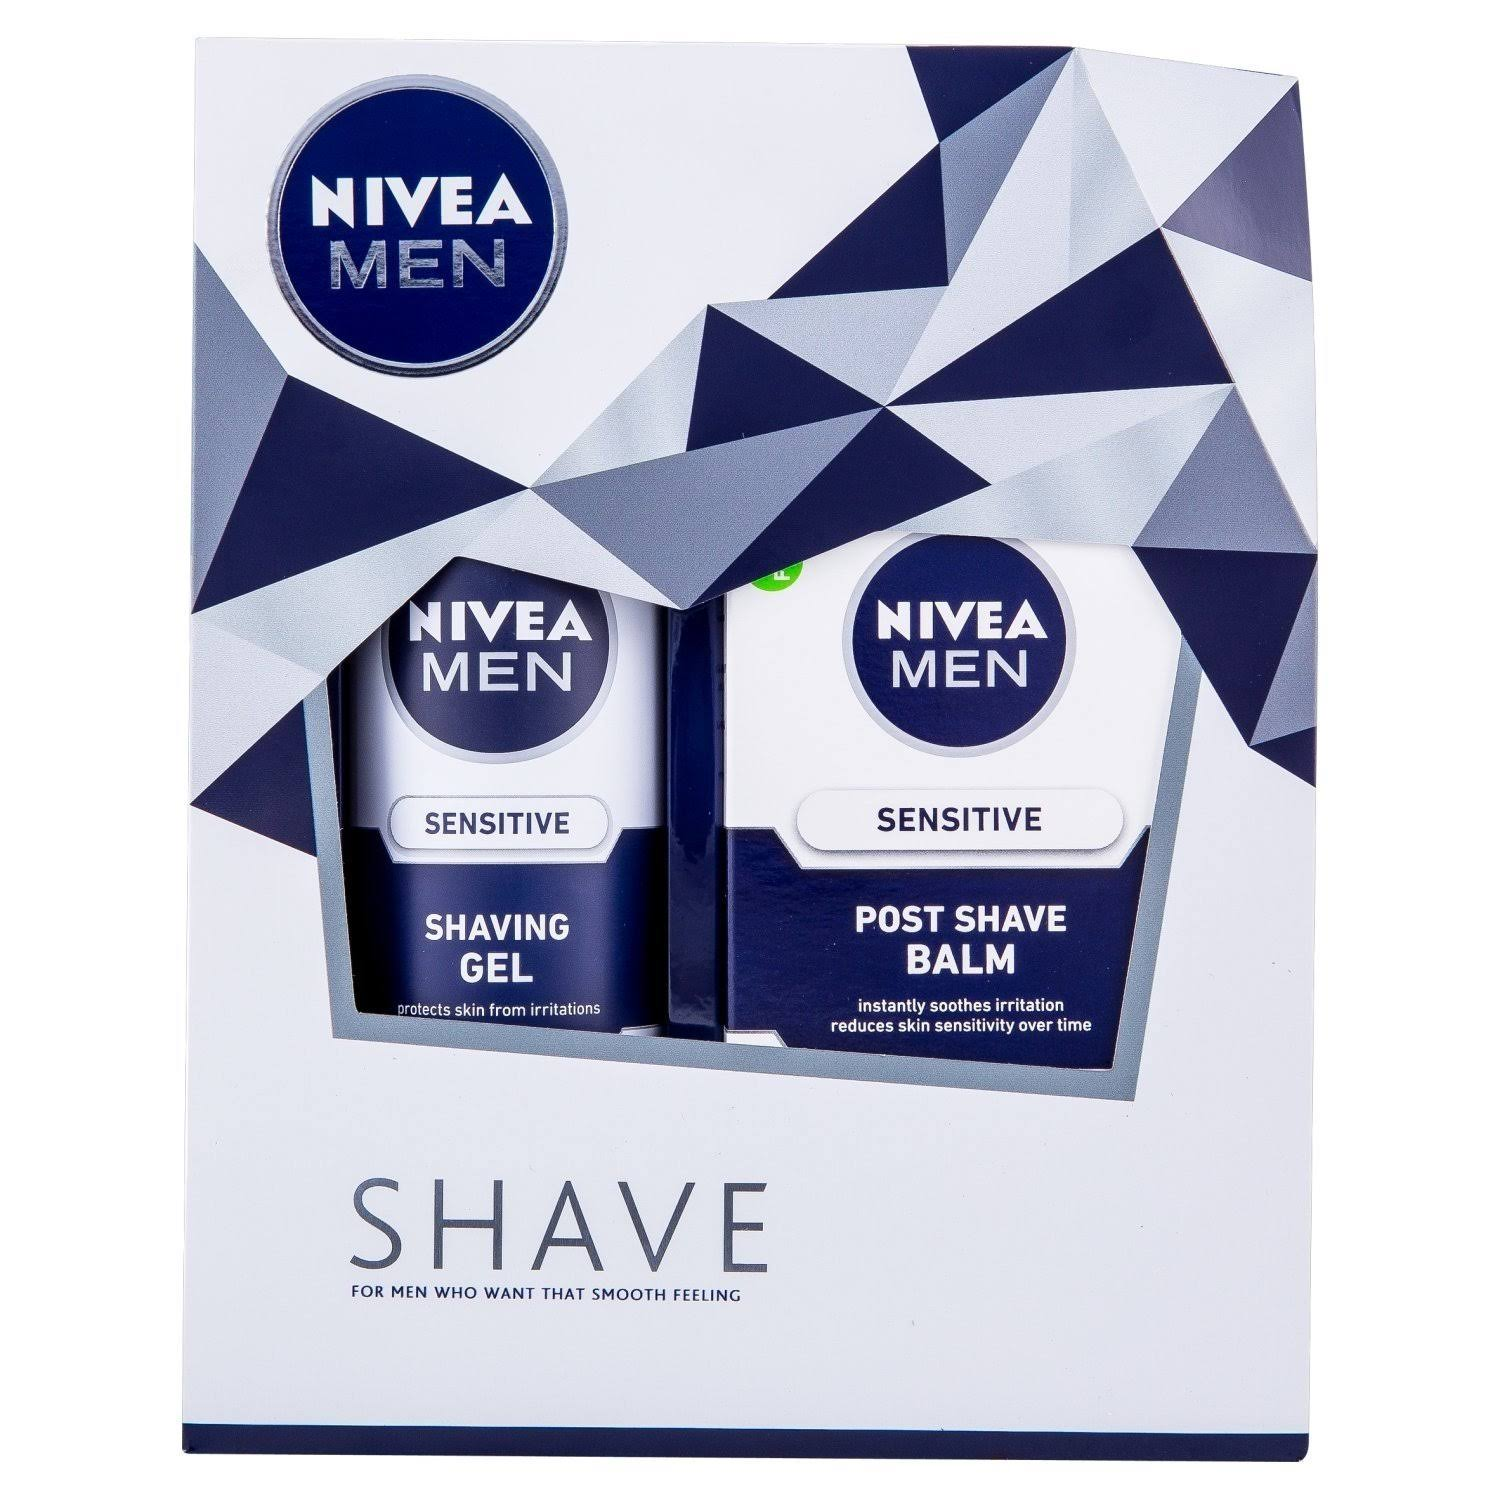 Nivea Men's Shaving Gift Set - 2pcs